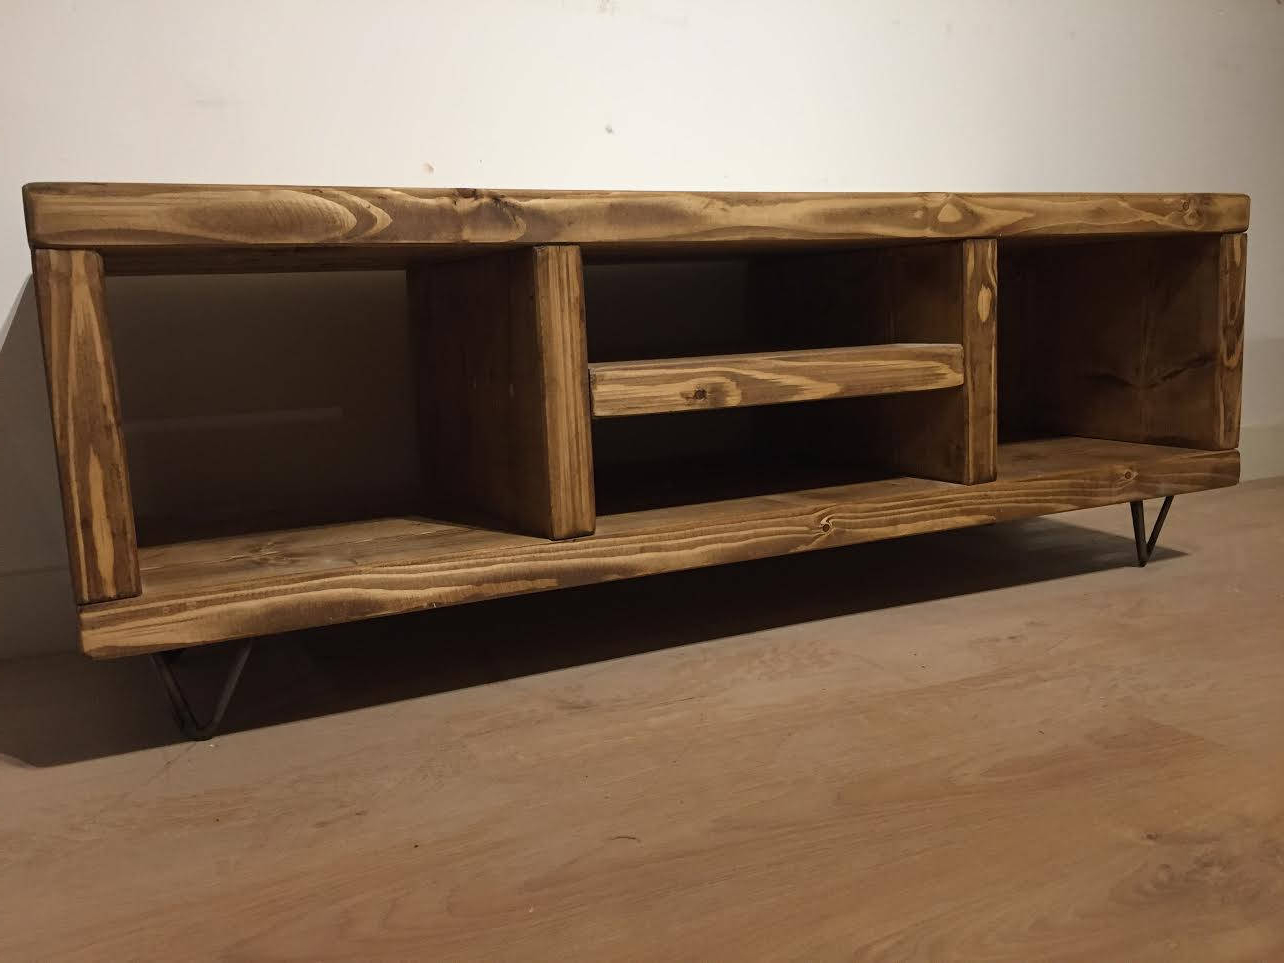 2018 New Pine Tv Cabinet With Hairpin Legs – Newco Interiors – Bespoke Intended For Hairpin Leg Tv Stands (Gallery 11 of 20)